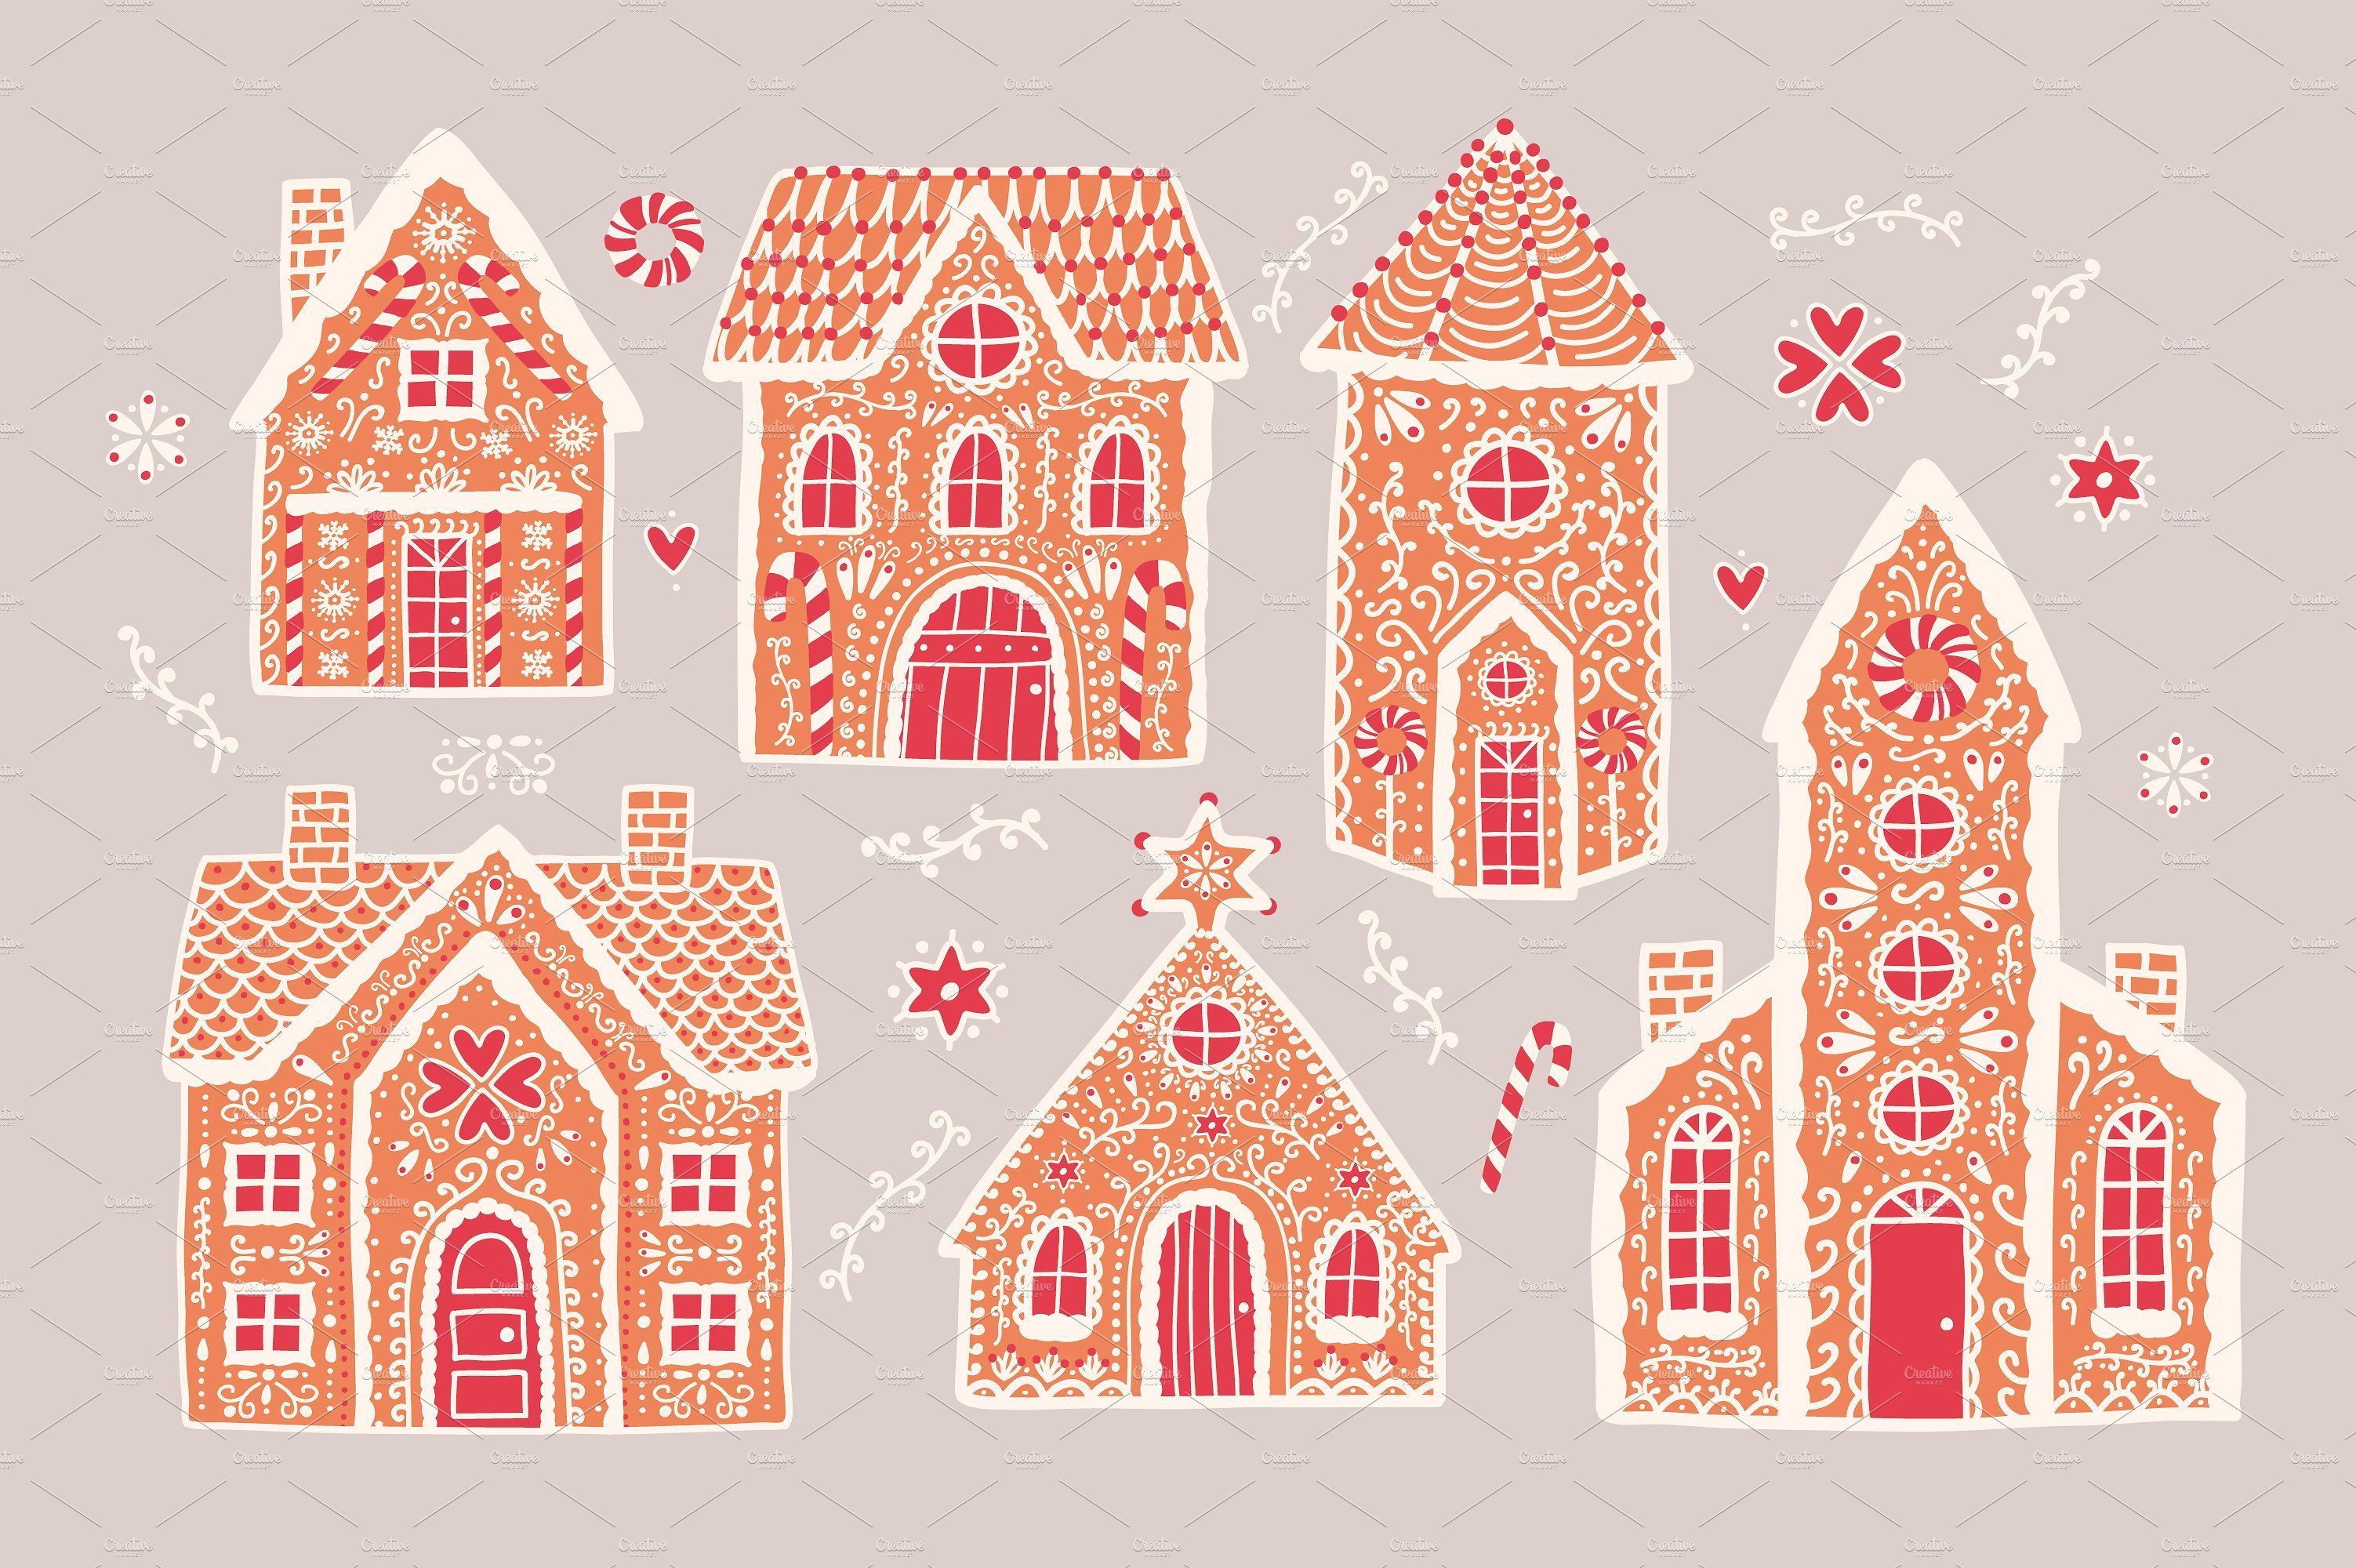 Gingerbread houses cartooncolorfulvectorsugar (With